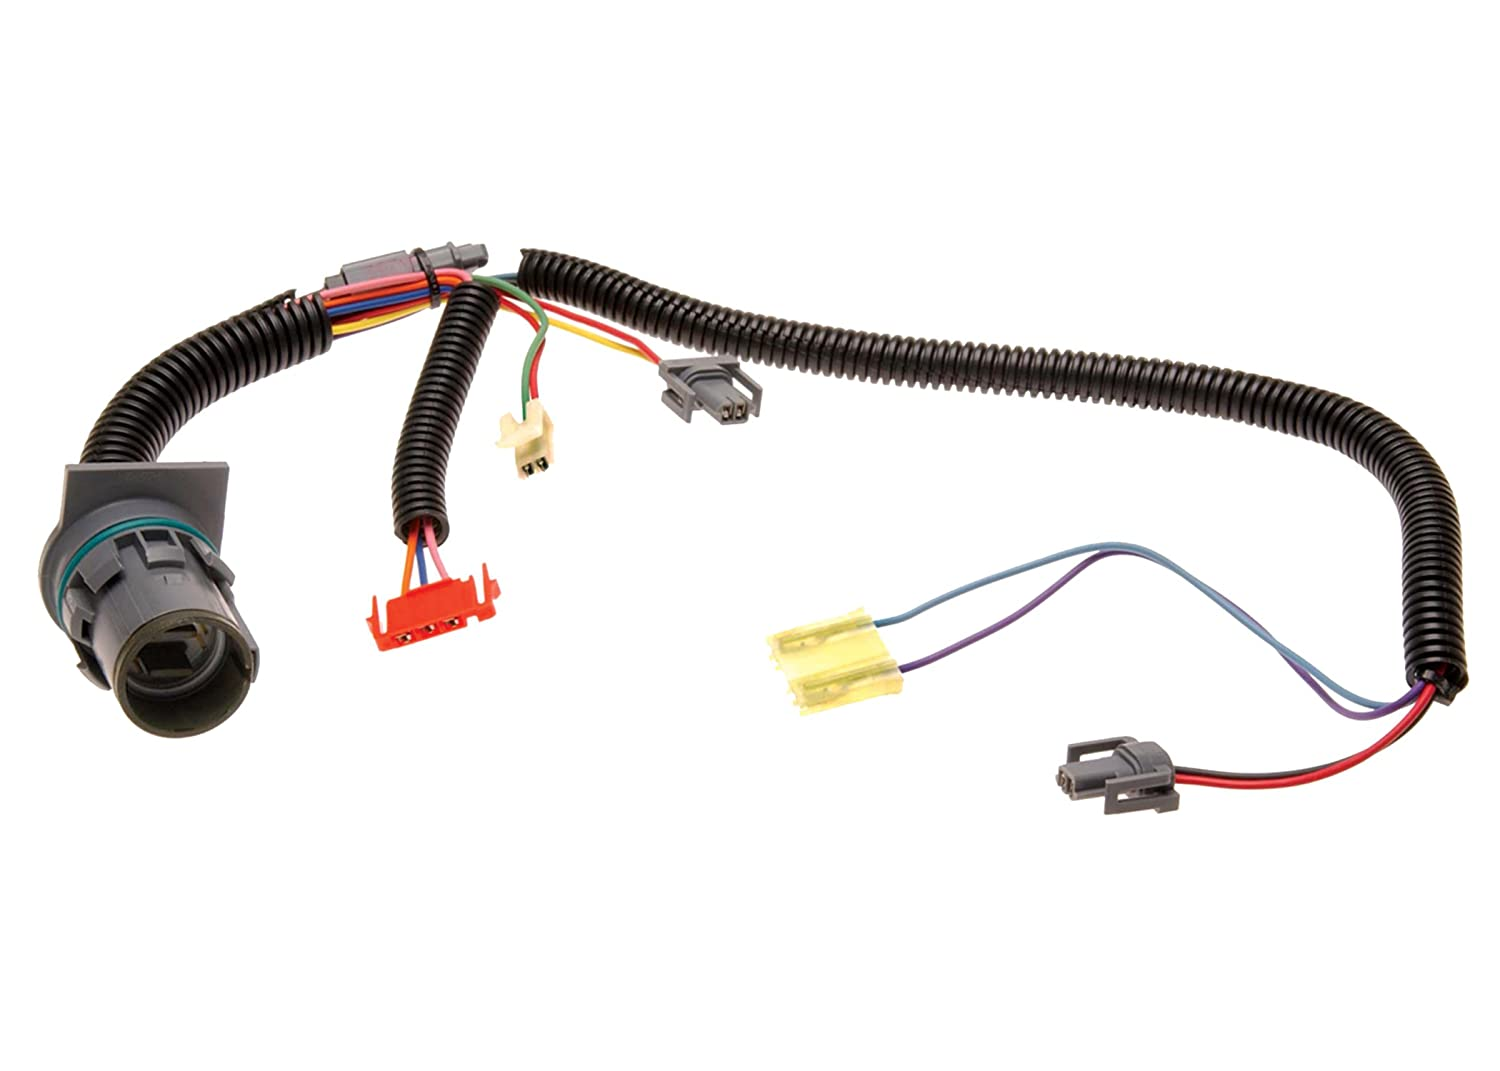 719PwzbjELL._SL1500_ amazon com acdelco 24200161 gm original equipment automatic transmission wiring harness at suagrazia.org